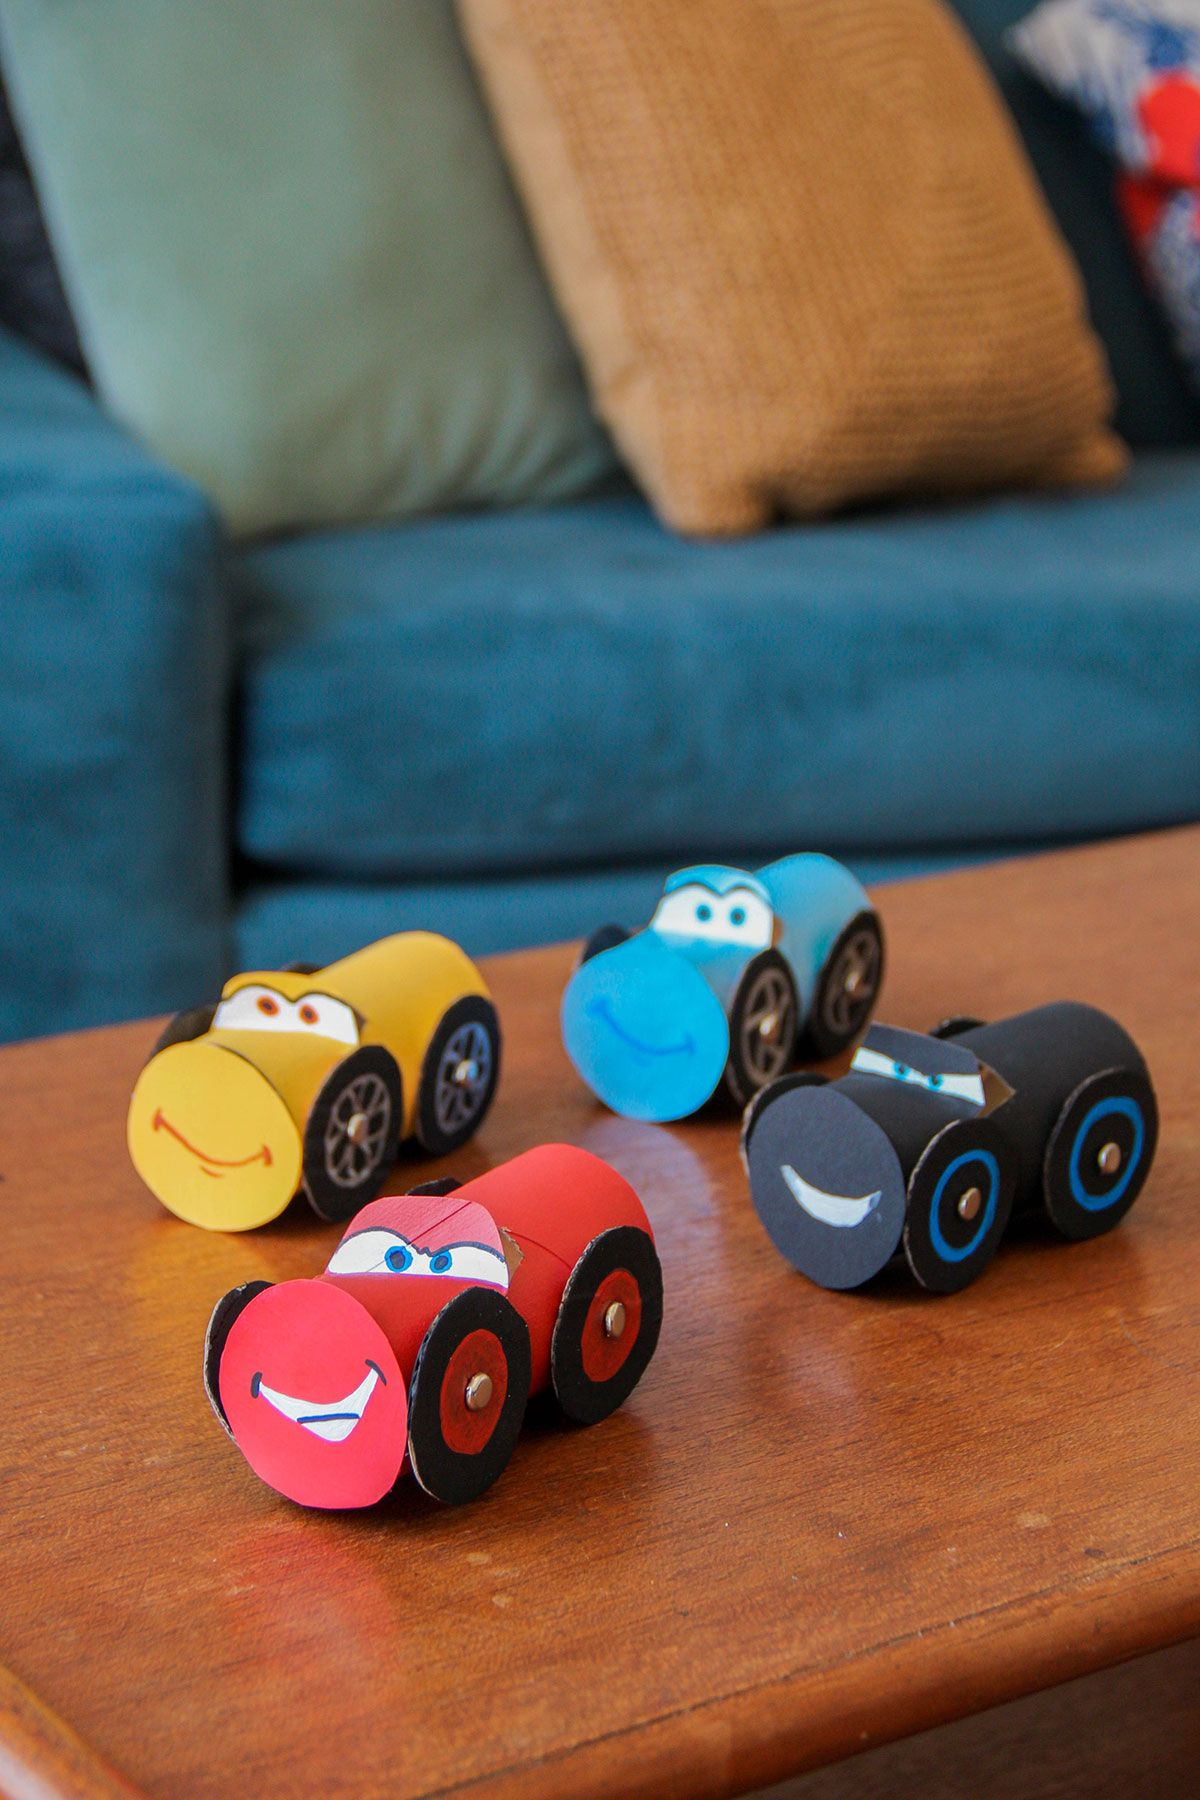 Cars 3 Cardboard Craft For This #DisneyWeekend | Disney Family